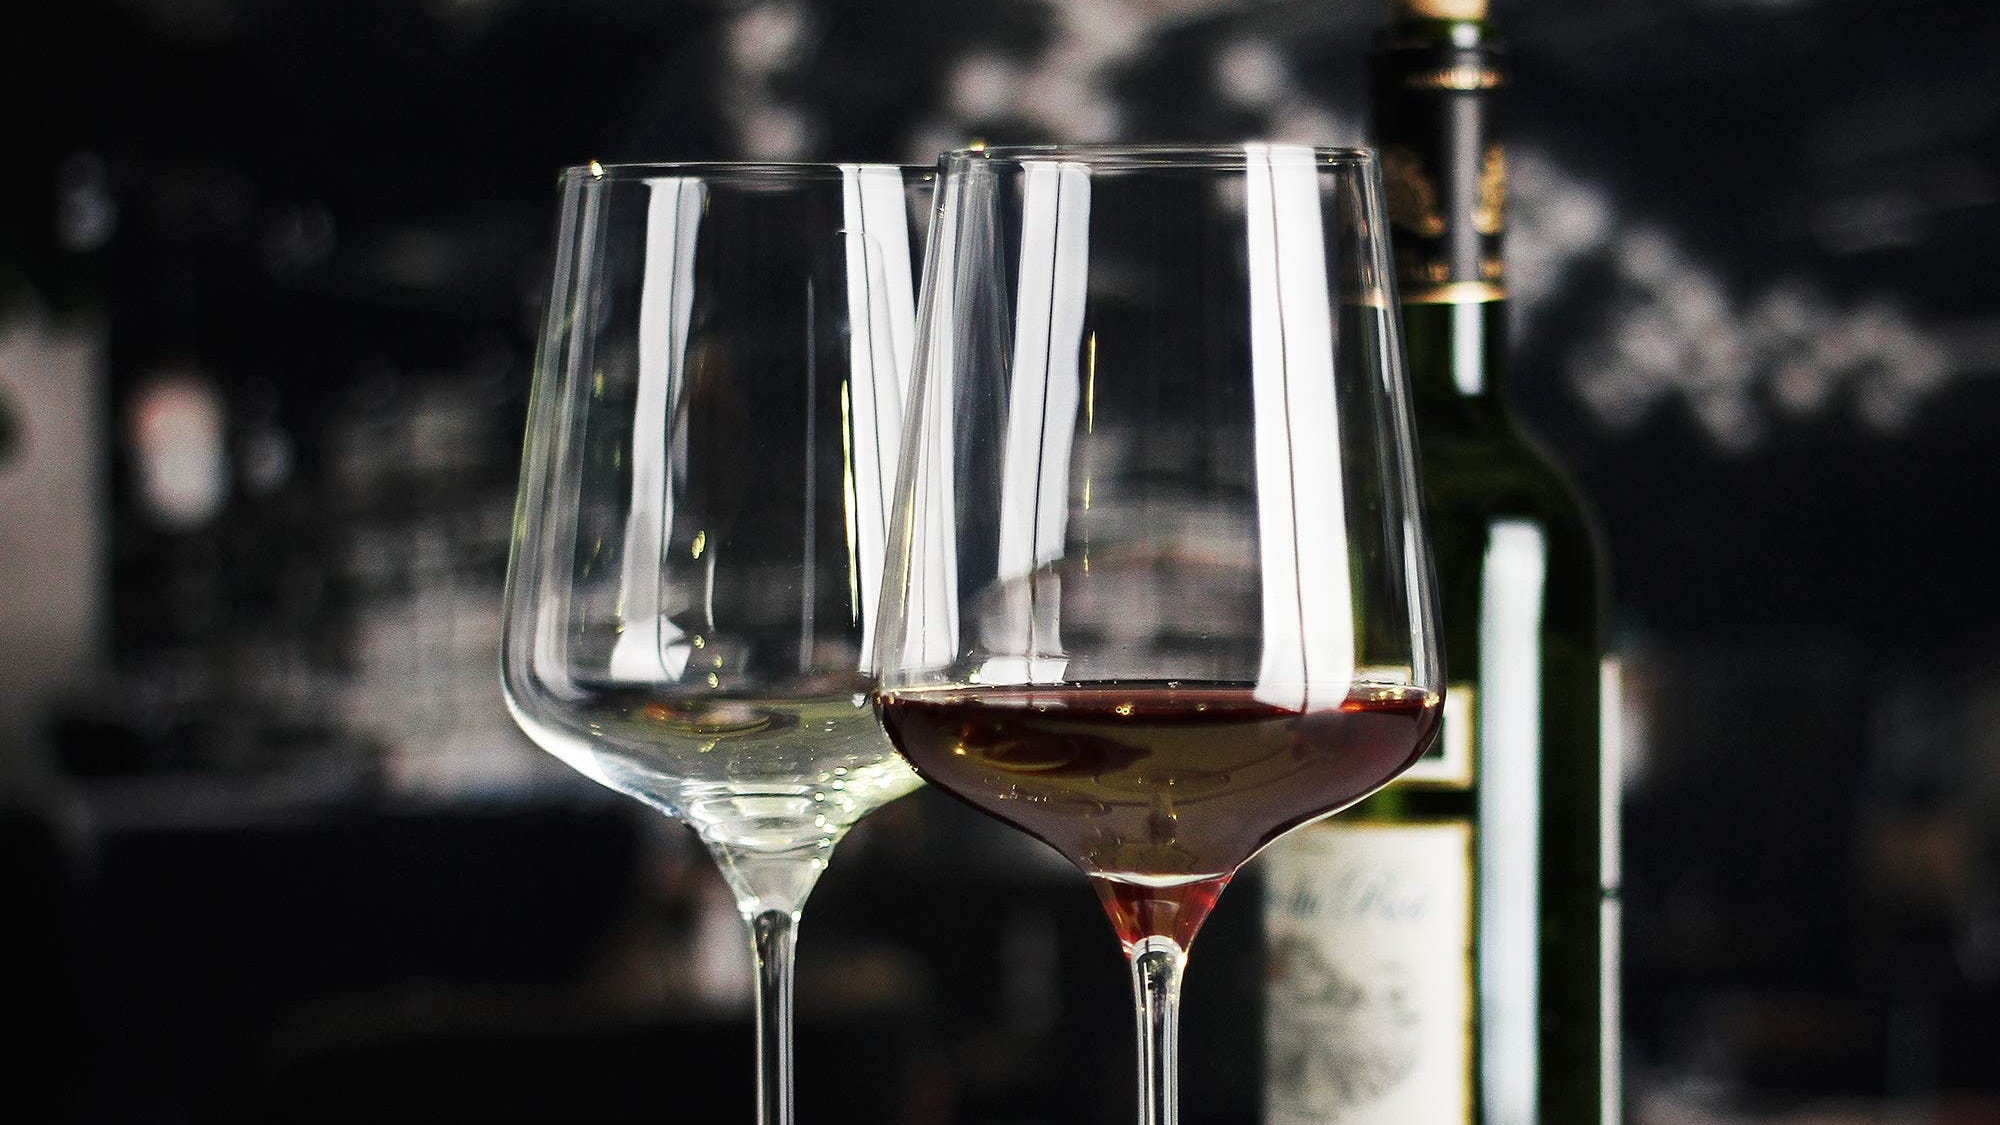 Two wine glasses, one with red wine and one with white, in front of a corked bottle.